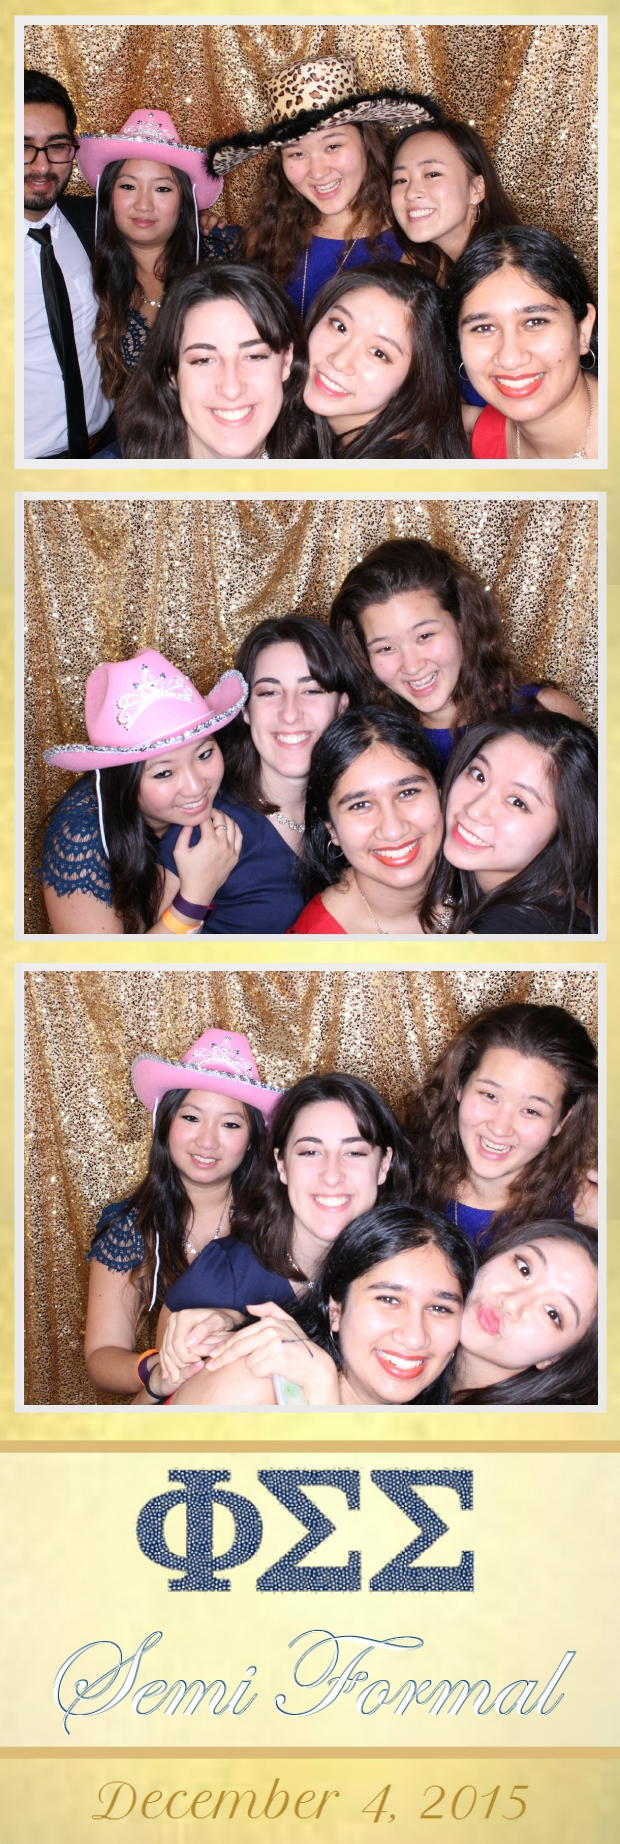 Guest House Events Photo Booth Phi Sigma Sigma Semi Formal (62).jpg